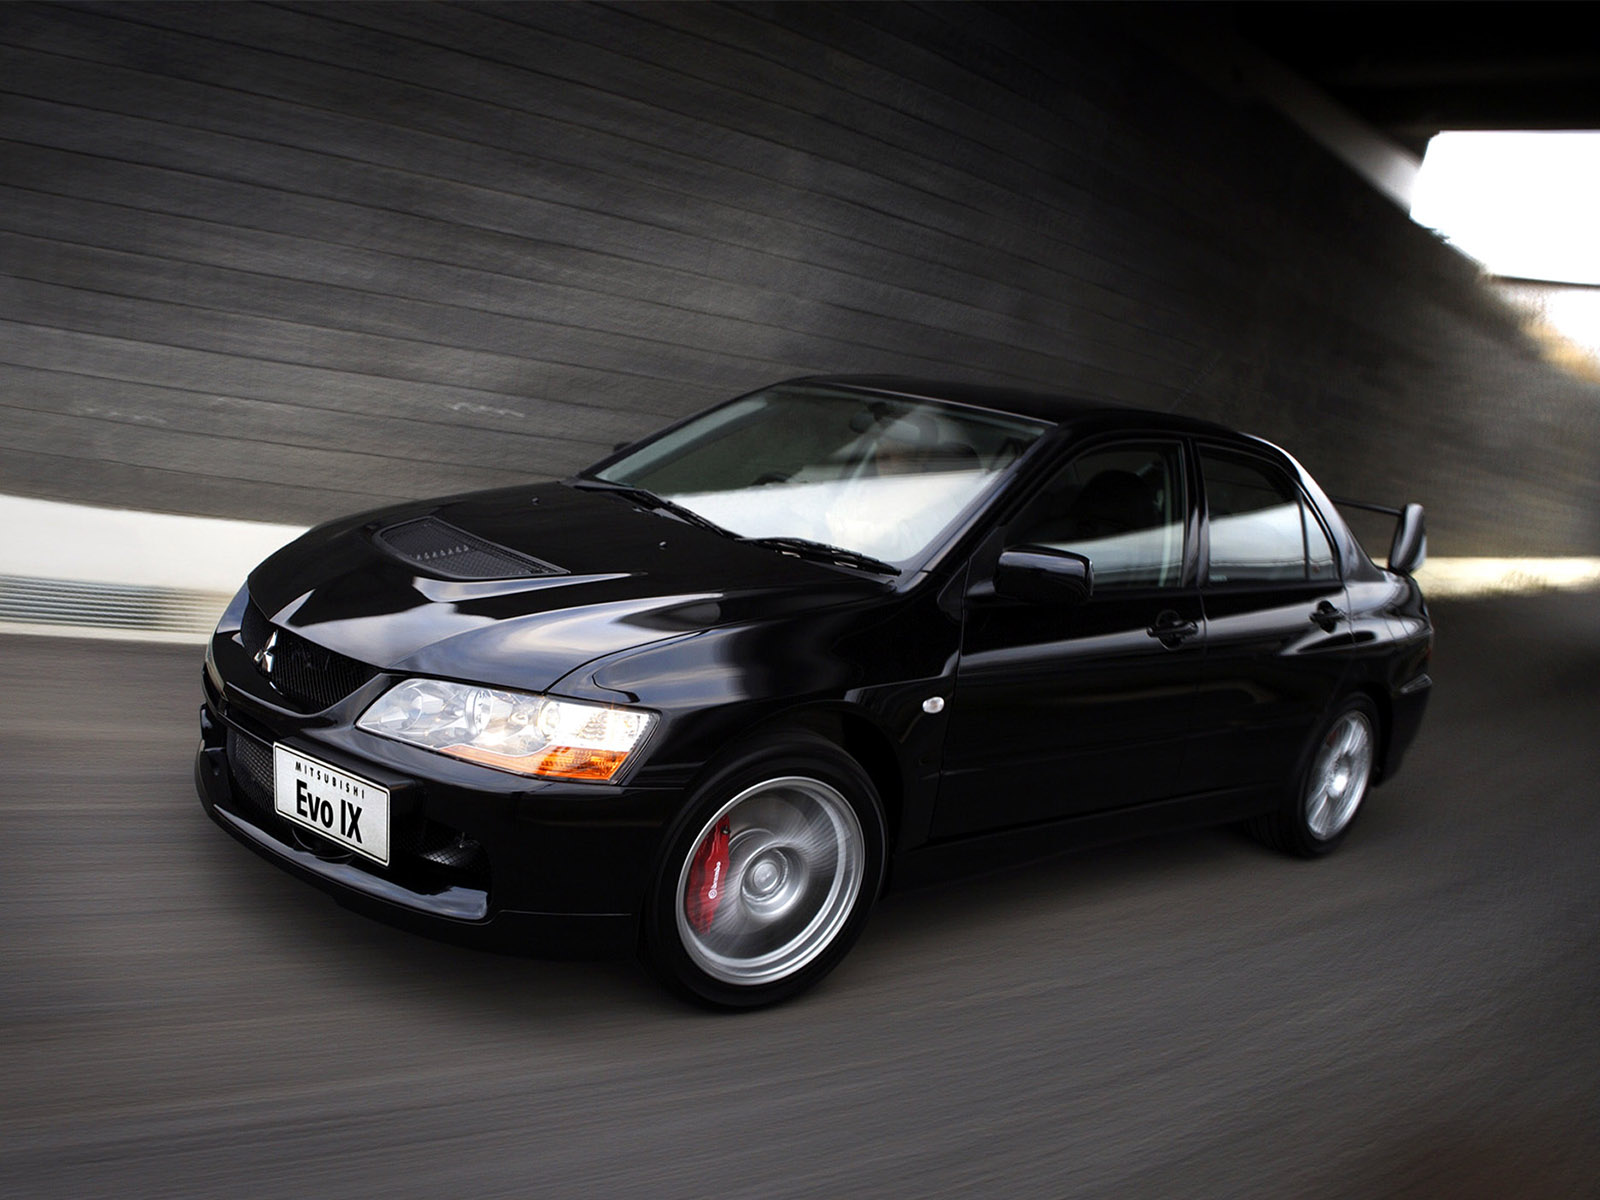 used mitsubishi lancer evolution for sale cargurus autos weblog. Black Bedroom Furniture Sets. Home Design Ideas